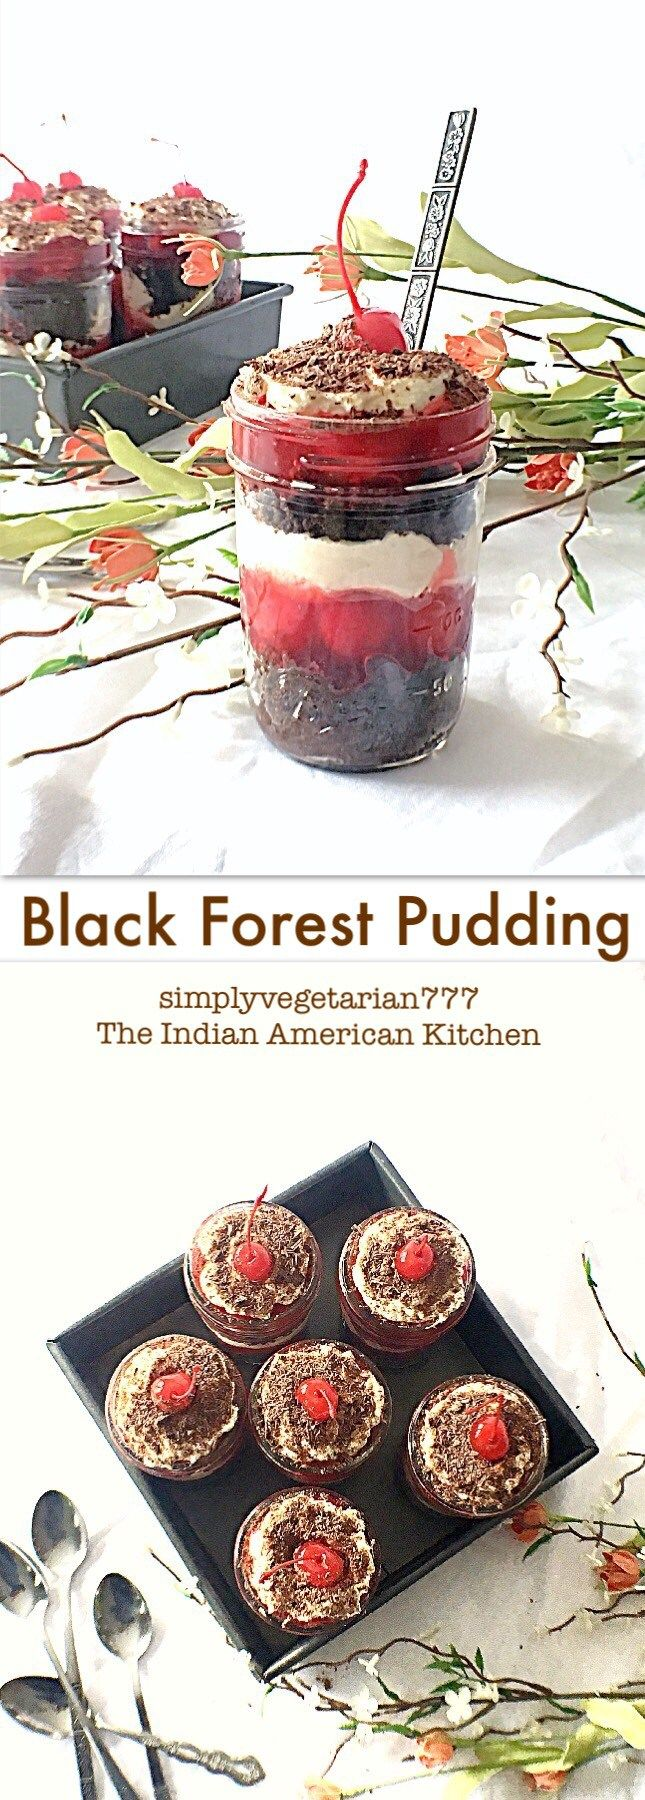 Easy Quick Black Forest Cake Recipe is a perfect Mason Jar Dessert. It is a delectable dessert for any party. It is easy, efficient recipe made with everyday ingredients. #balckforestpudding #easydessert #quickpartydessert #chocolatecake #trifle #pudding #blackforestcake